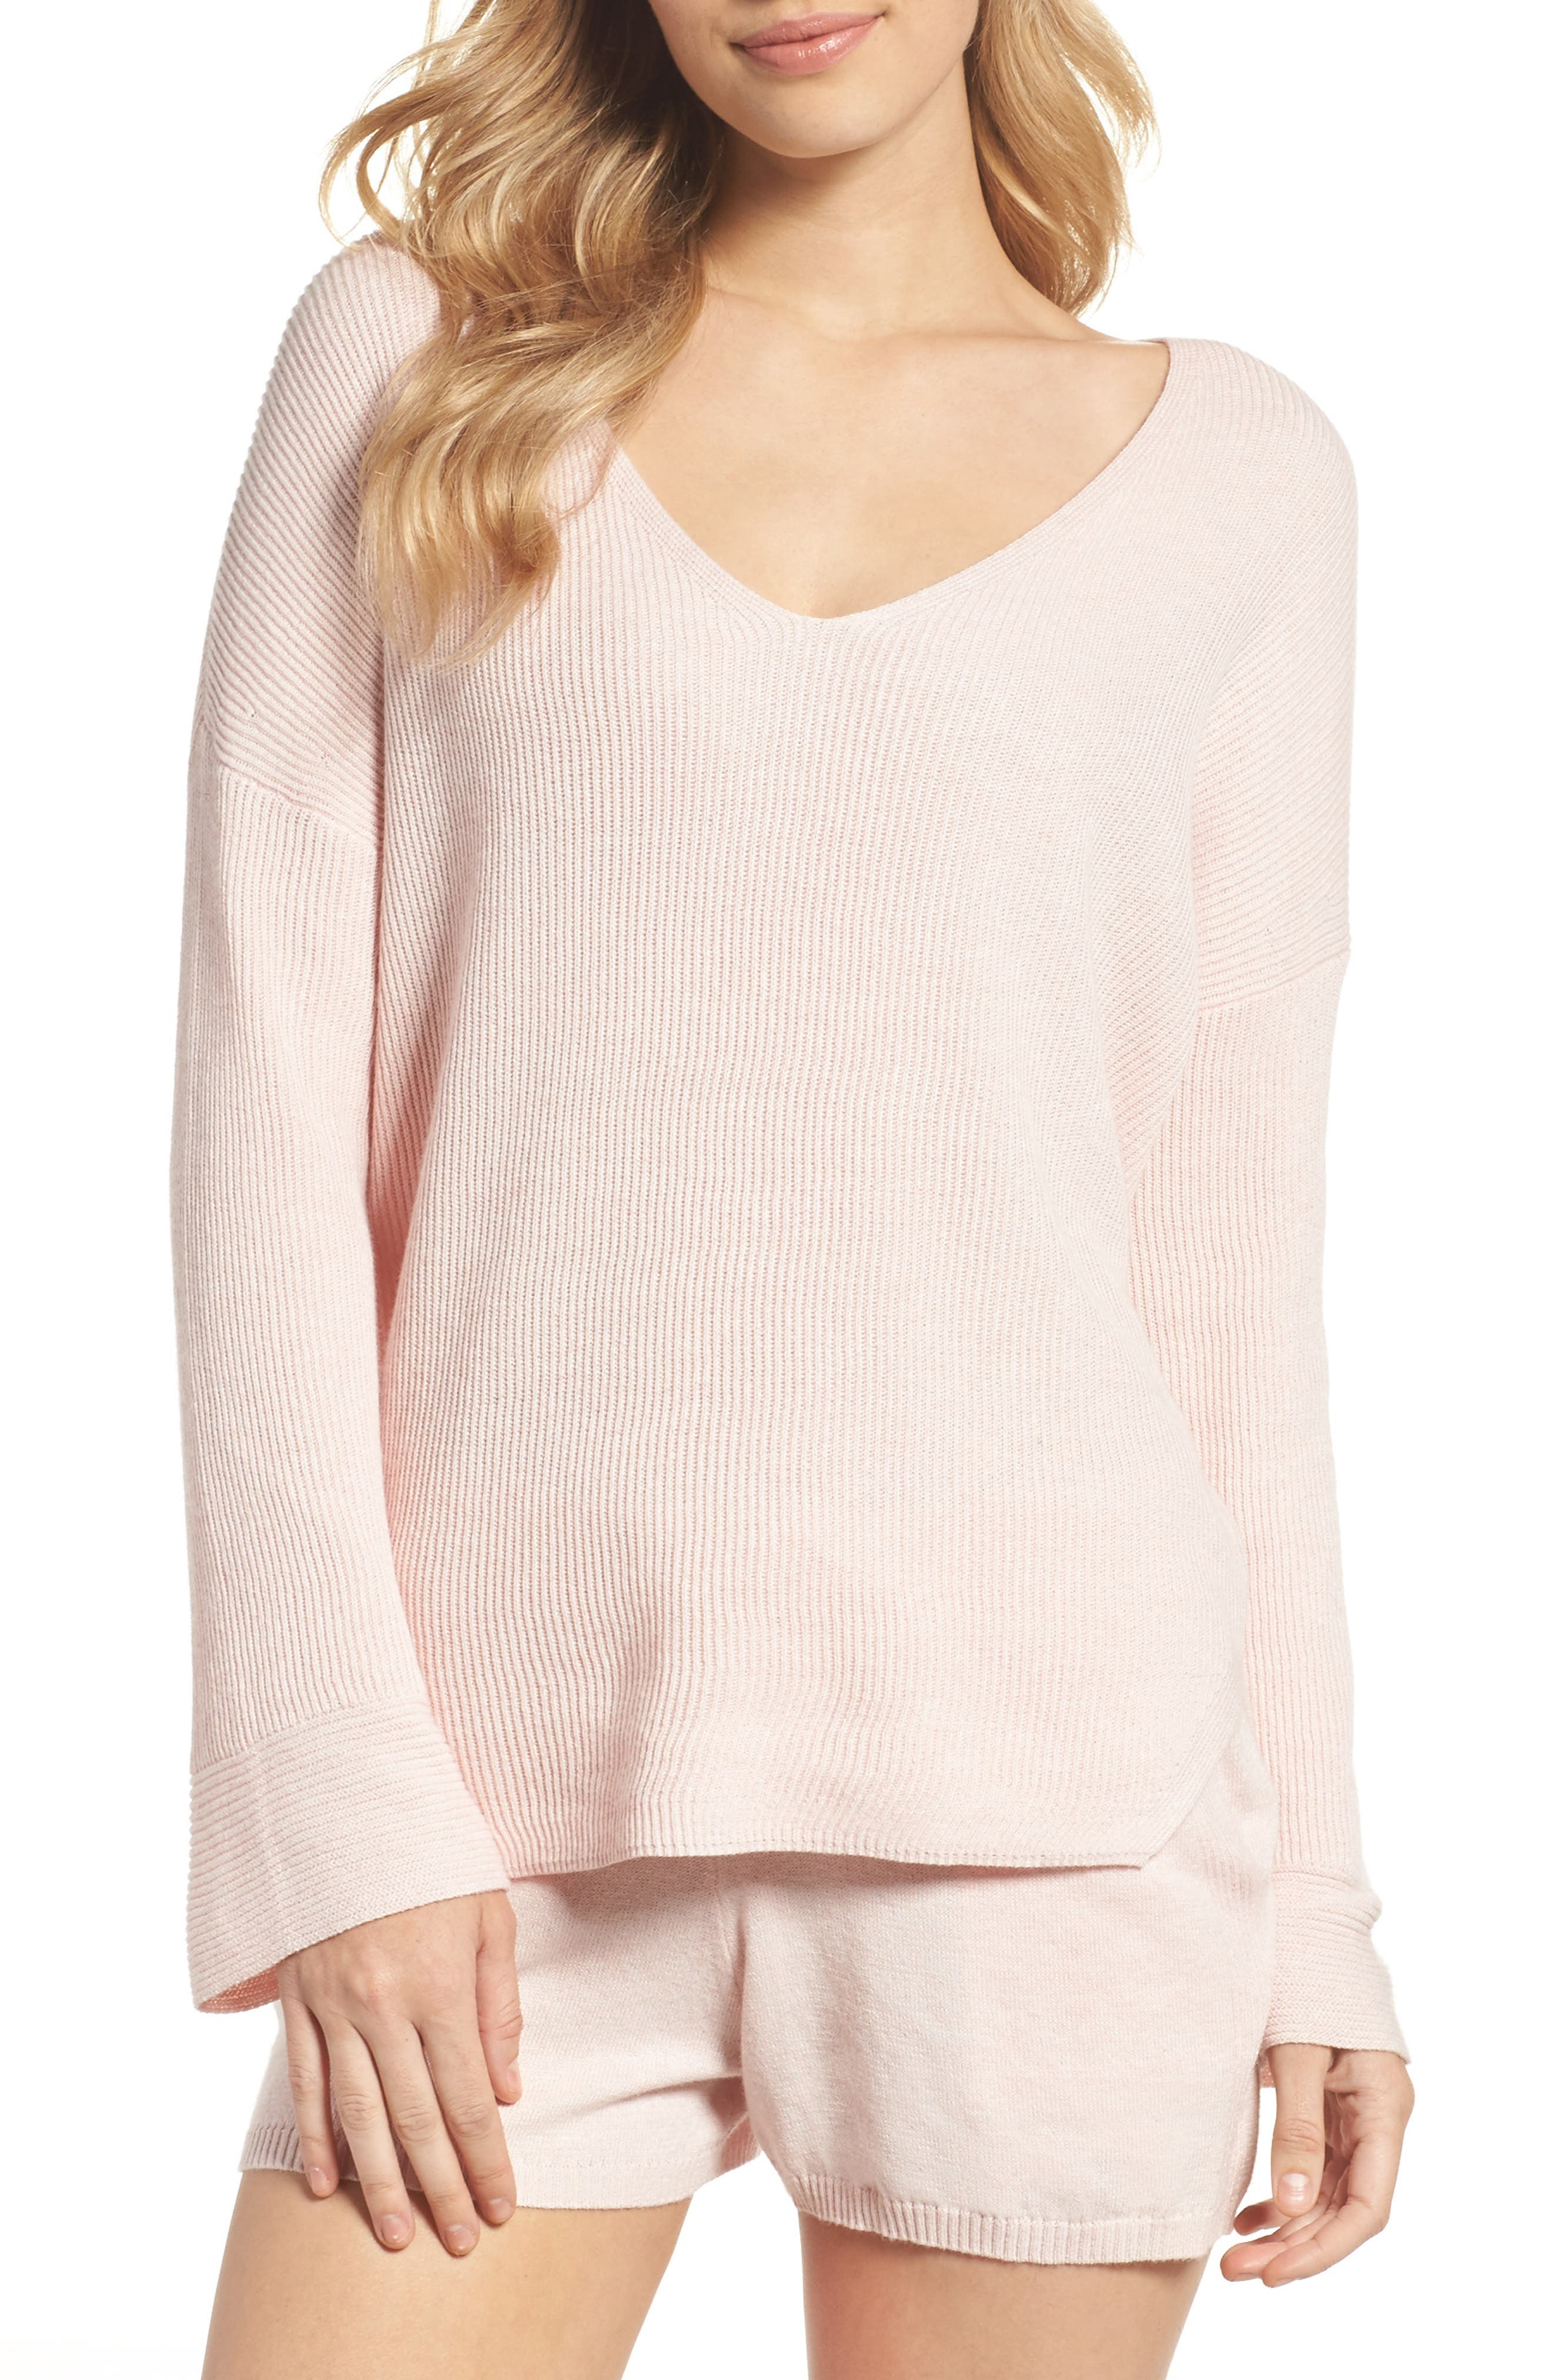 Veronica Lounge Pullover,                         Main,                         color, Soft Pink